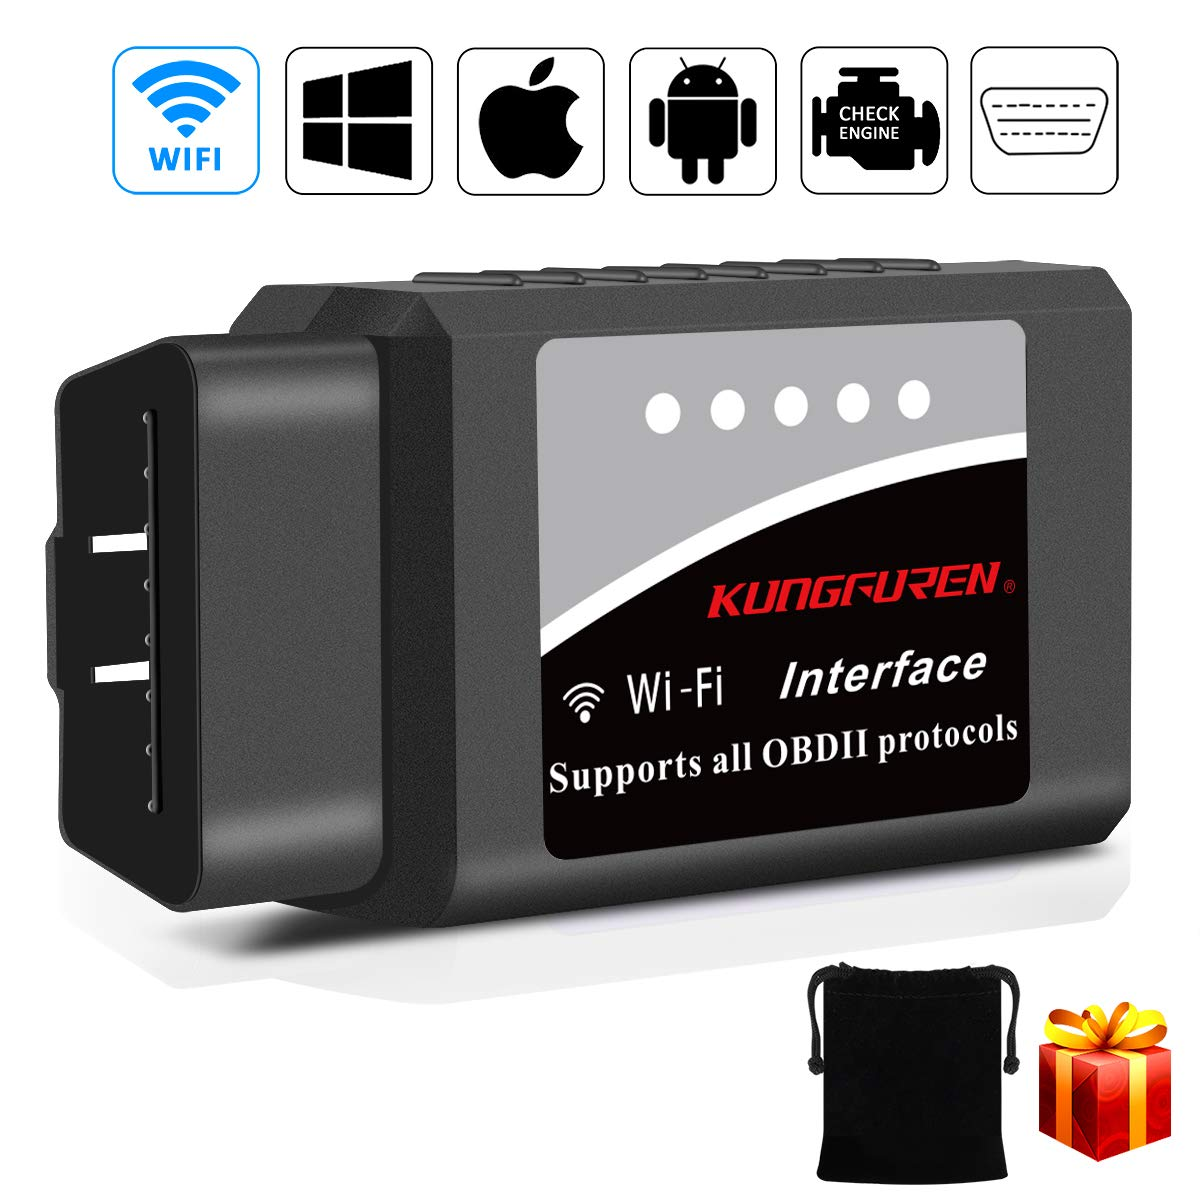 kungfuren OBD2 Scanner, [Upgraded 2018] Code Reader Car Diagnostic Tool Compatible with iOS, Android & Windows Devices Connects Via WiFi for Cars